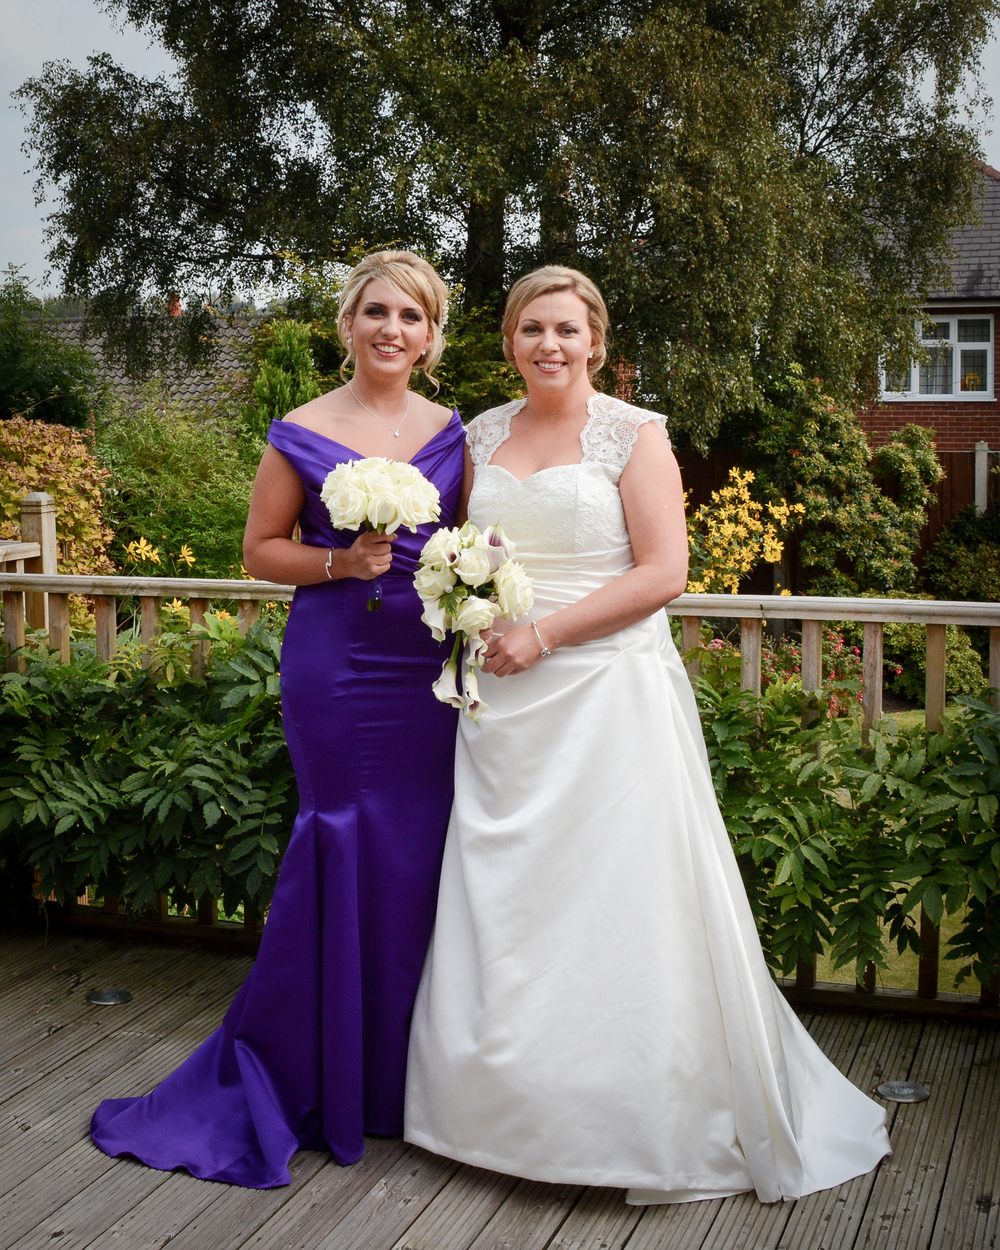 Bespoke Bride & Bridesmaid Dresses by Jessica Bennett Bespoke Bride